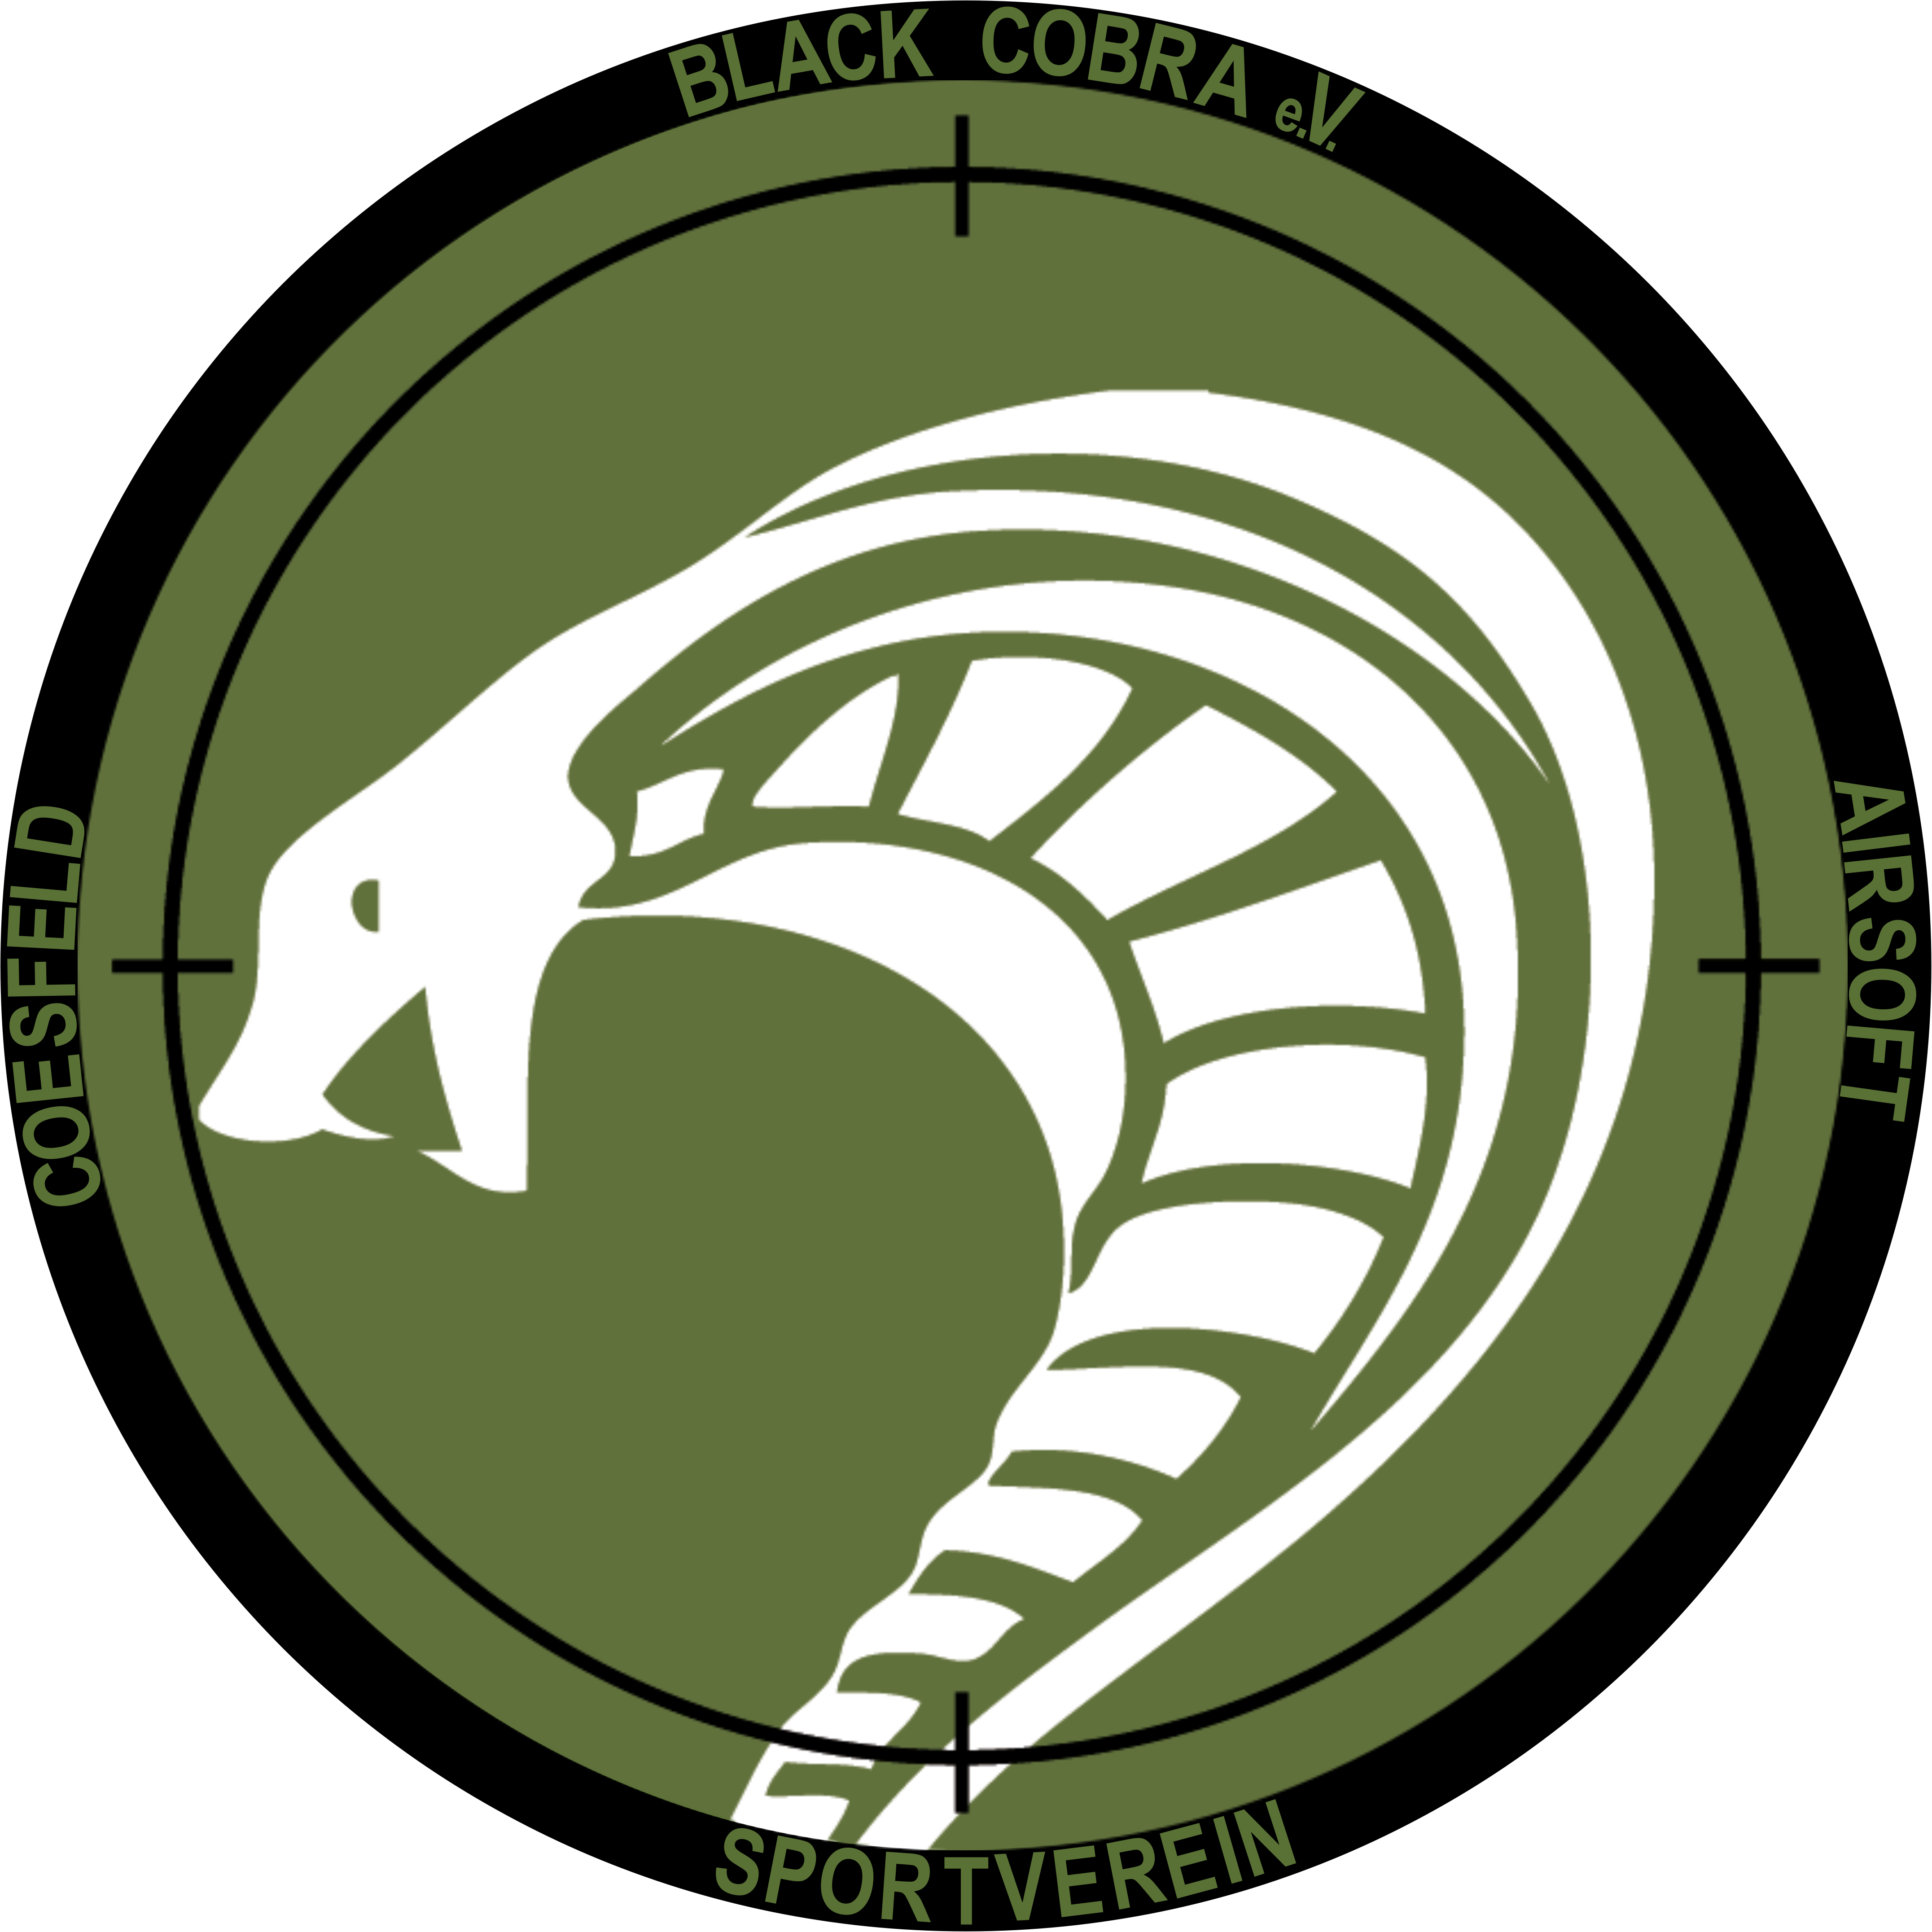 Airsoft Sportverein Coesfeld Black Cobra e.V.